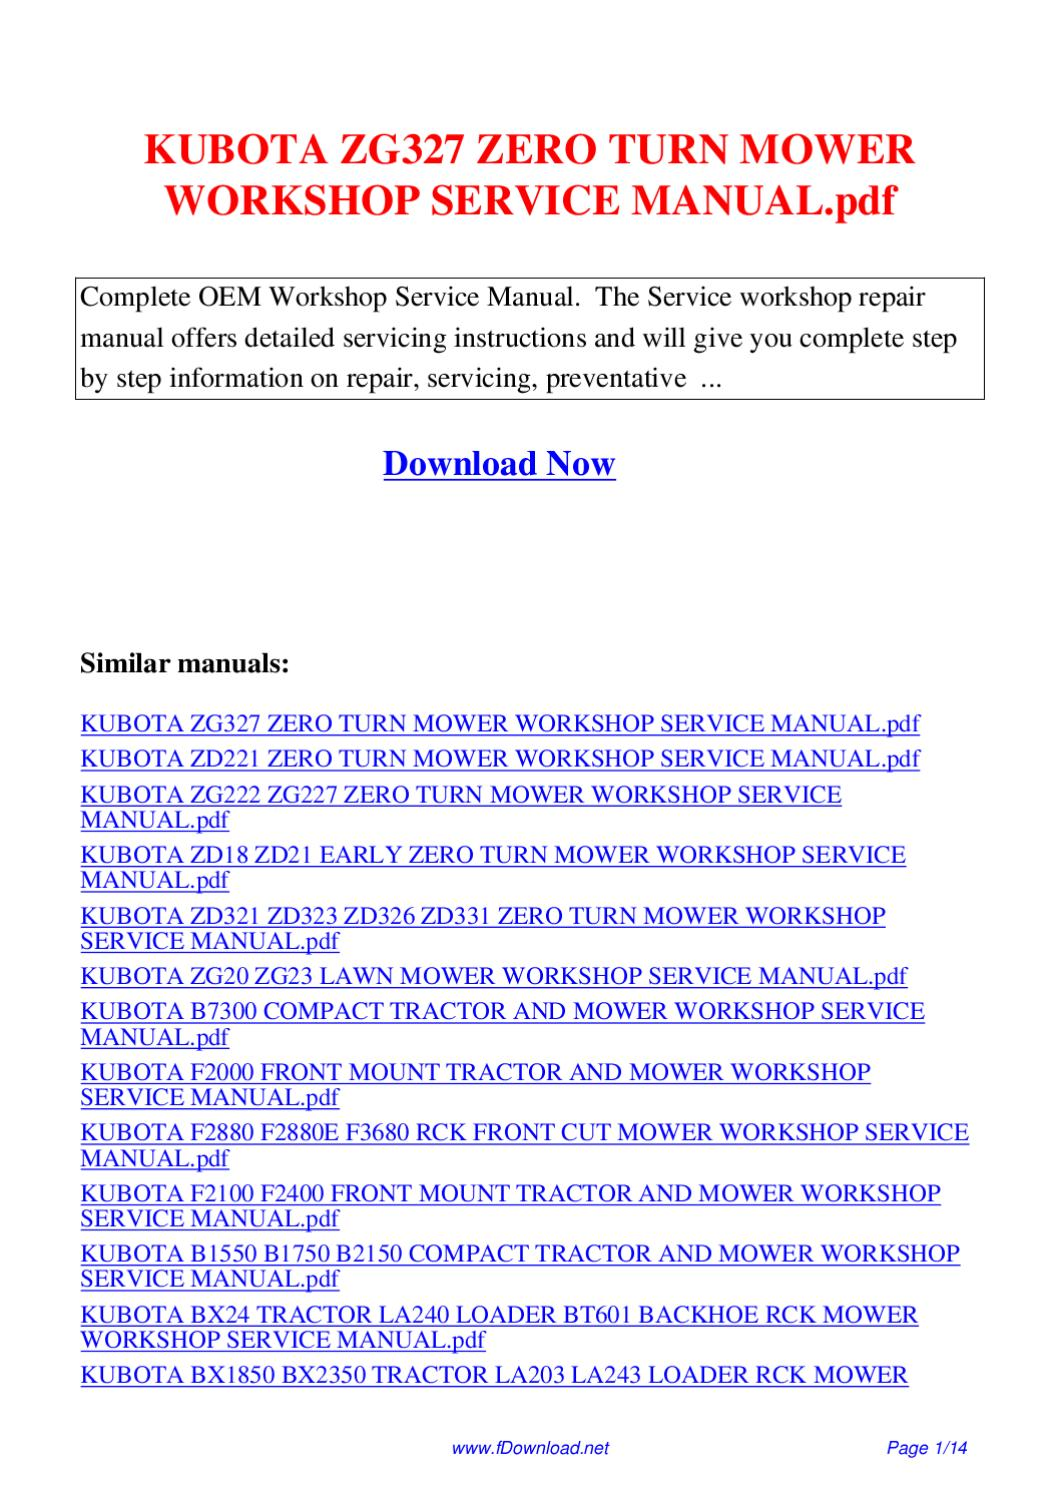 Kubota Zg327 Zero Turn Mower Workshop Service Manual Pdf